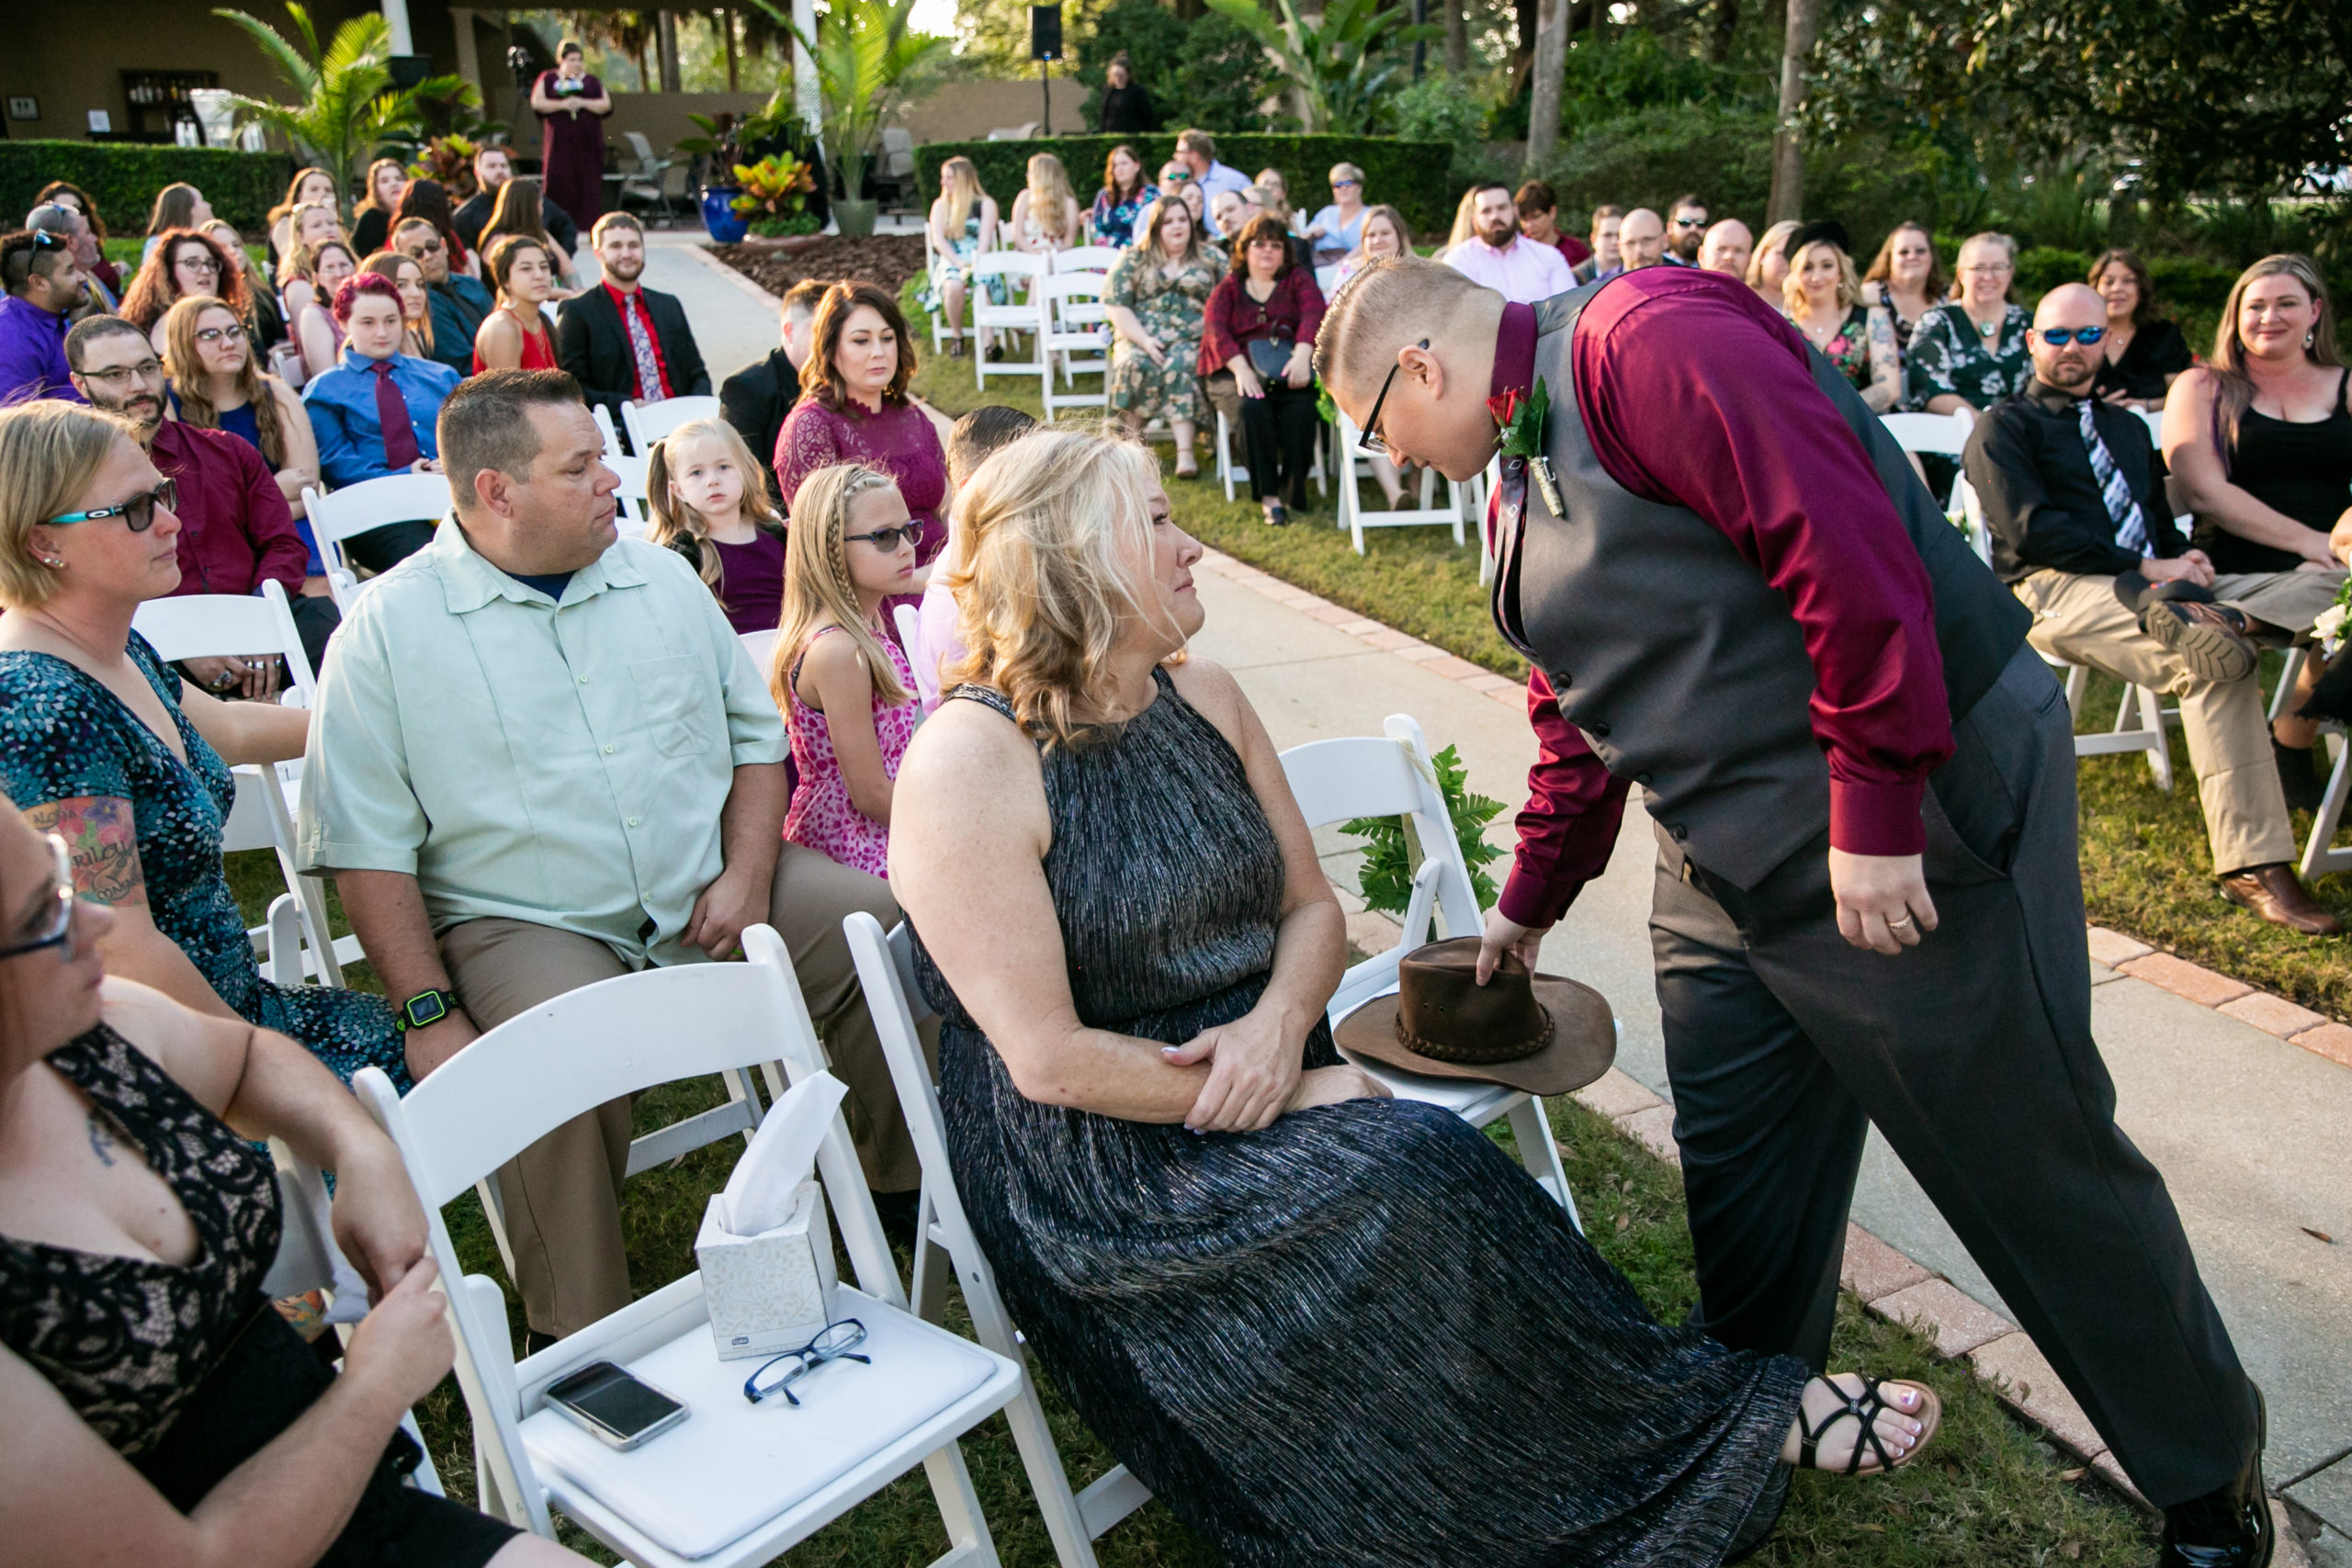 bride placing dad's leather hat over vacant ceremony seat for vineyard inspiring wedding